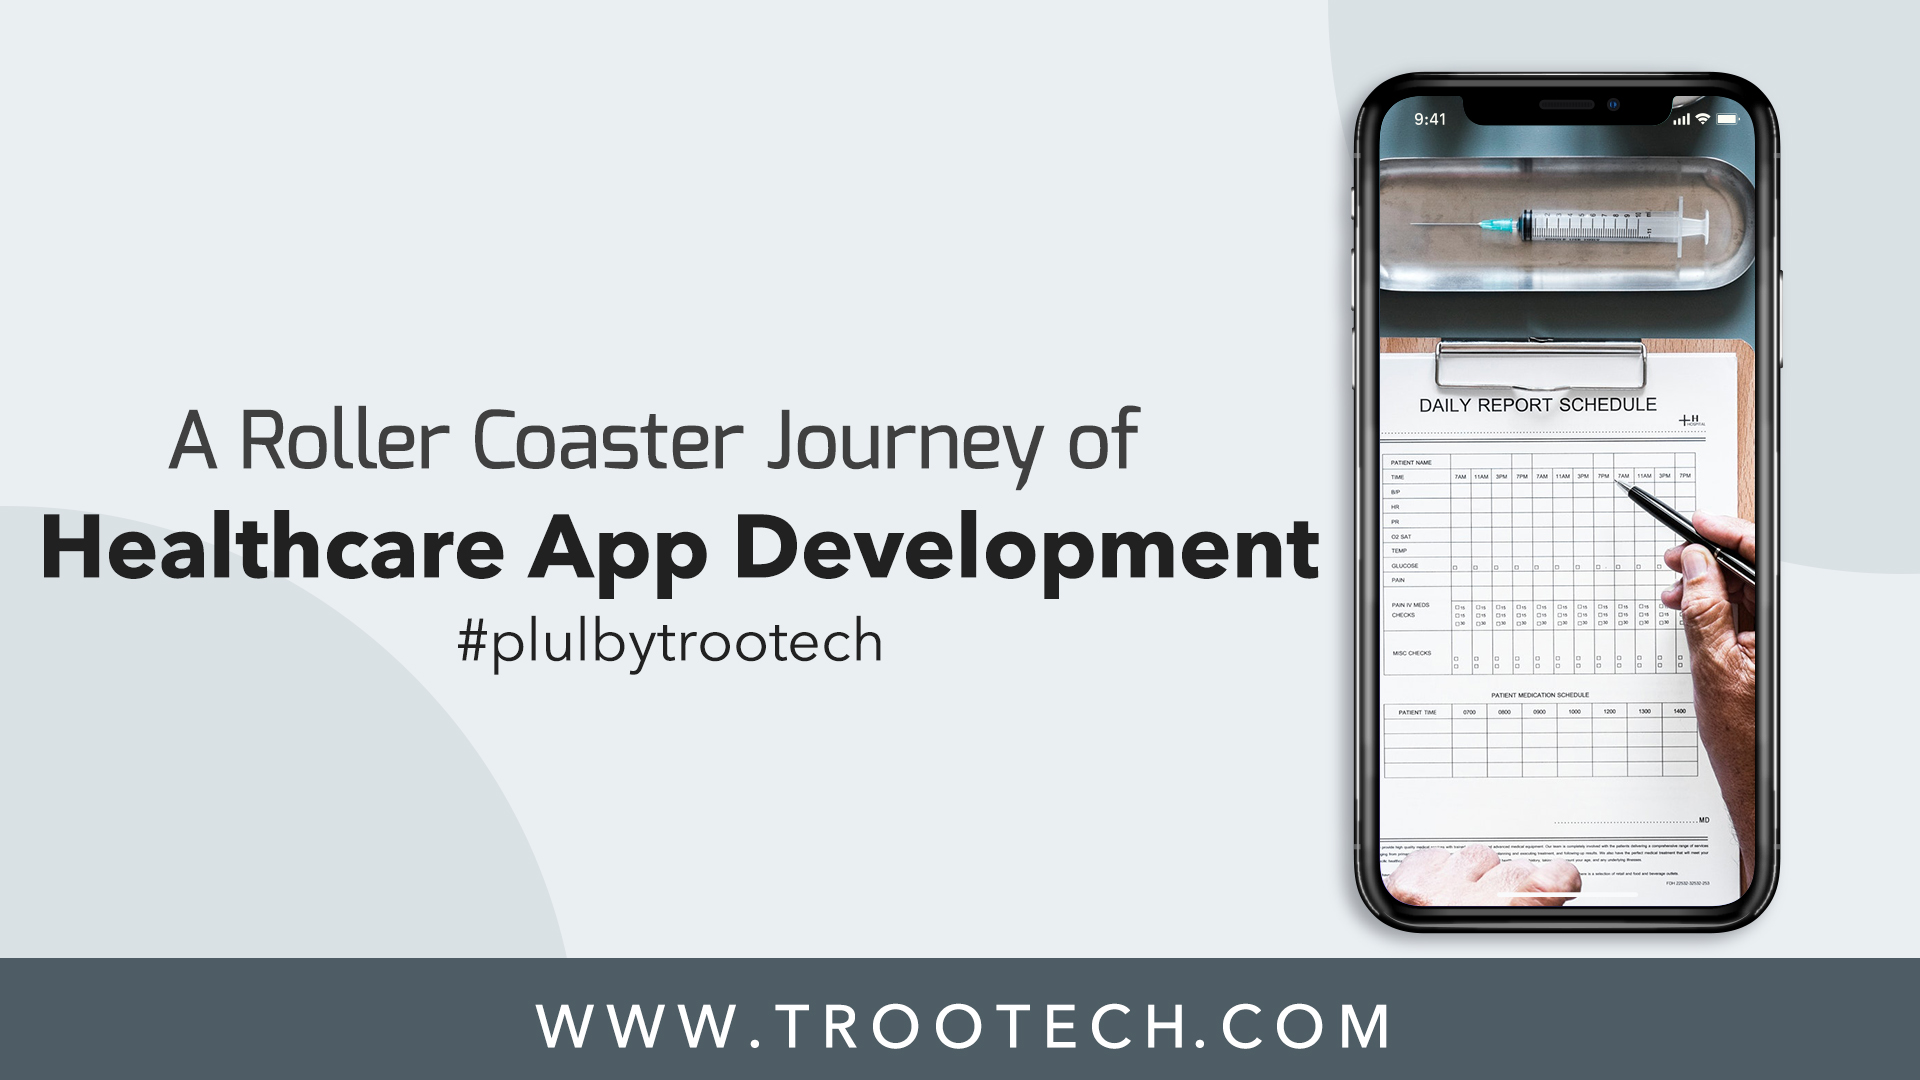 App Development For Health Records - Must Read Case Study For Healthcare Startups TRooTech Business Solutions